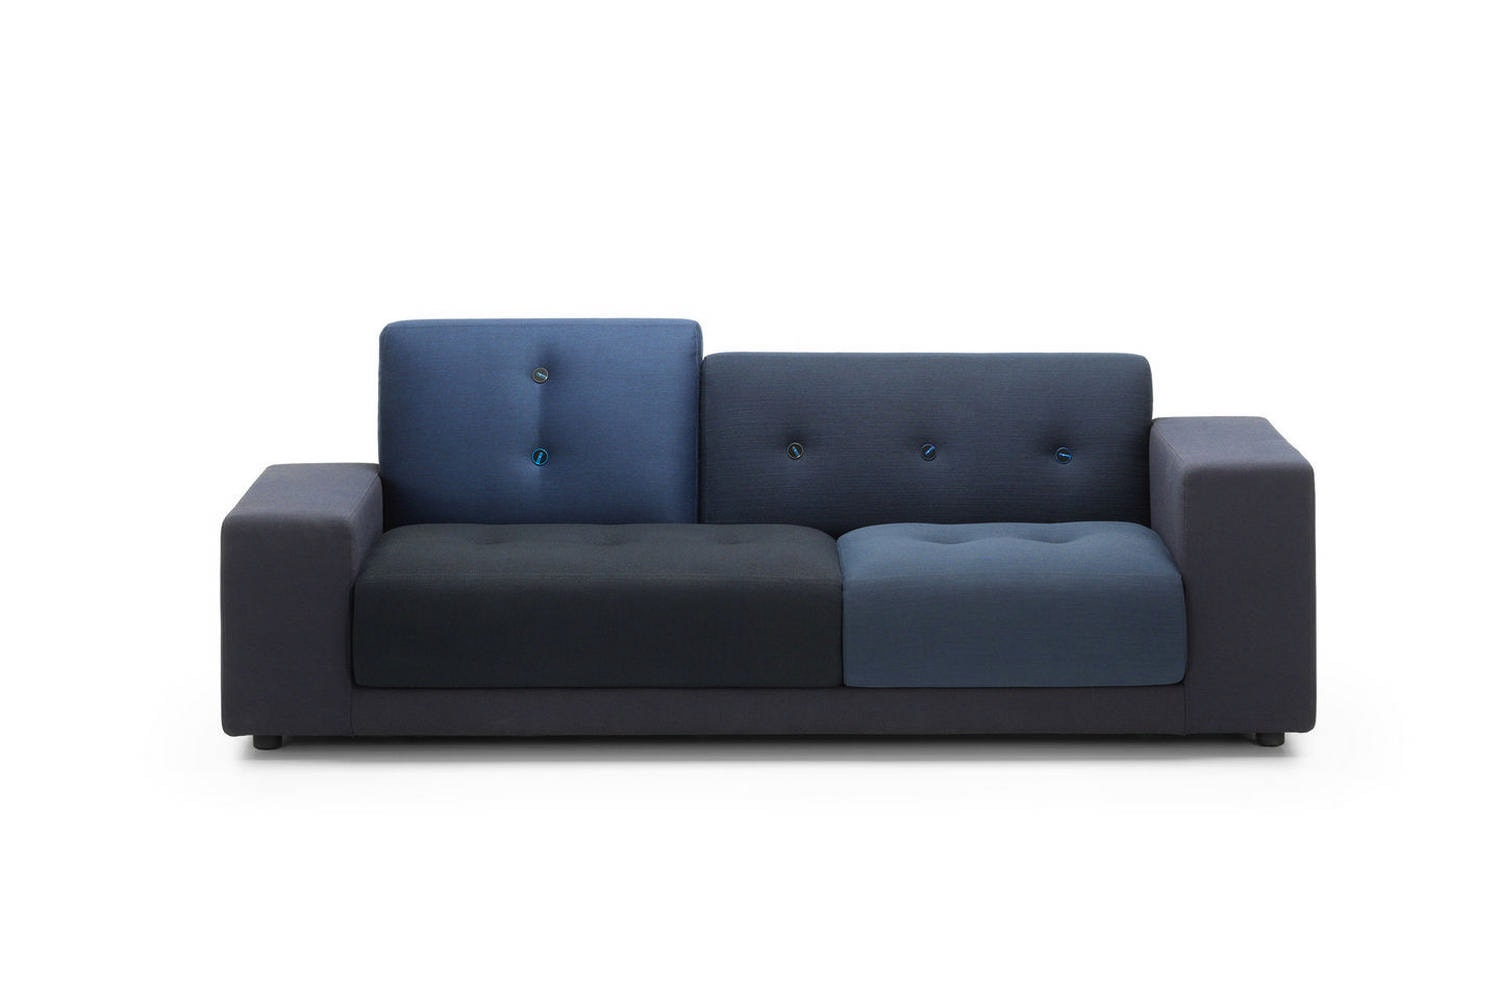 Polder Compact Sofa by Hella Jongerius for Vitra